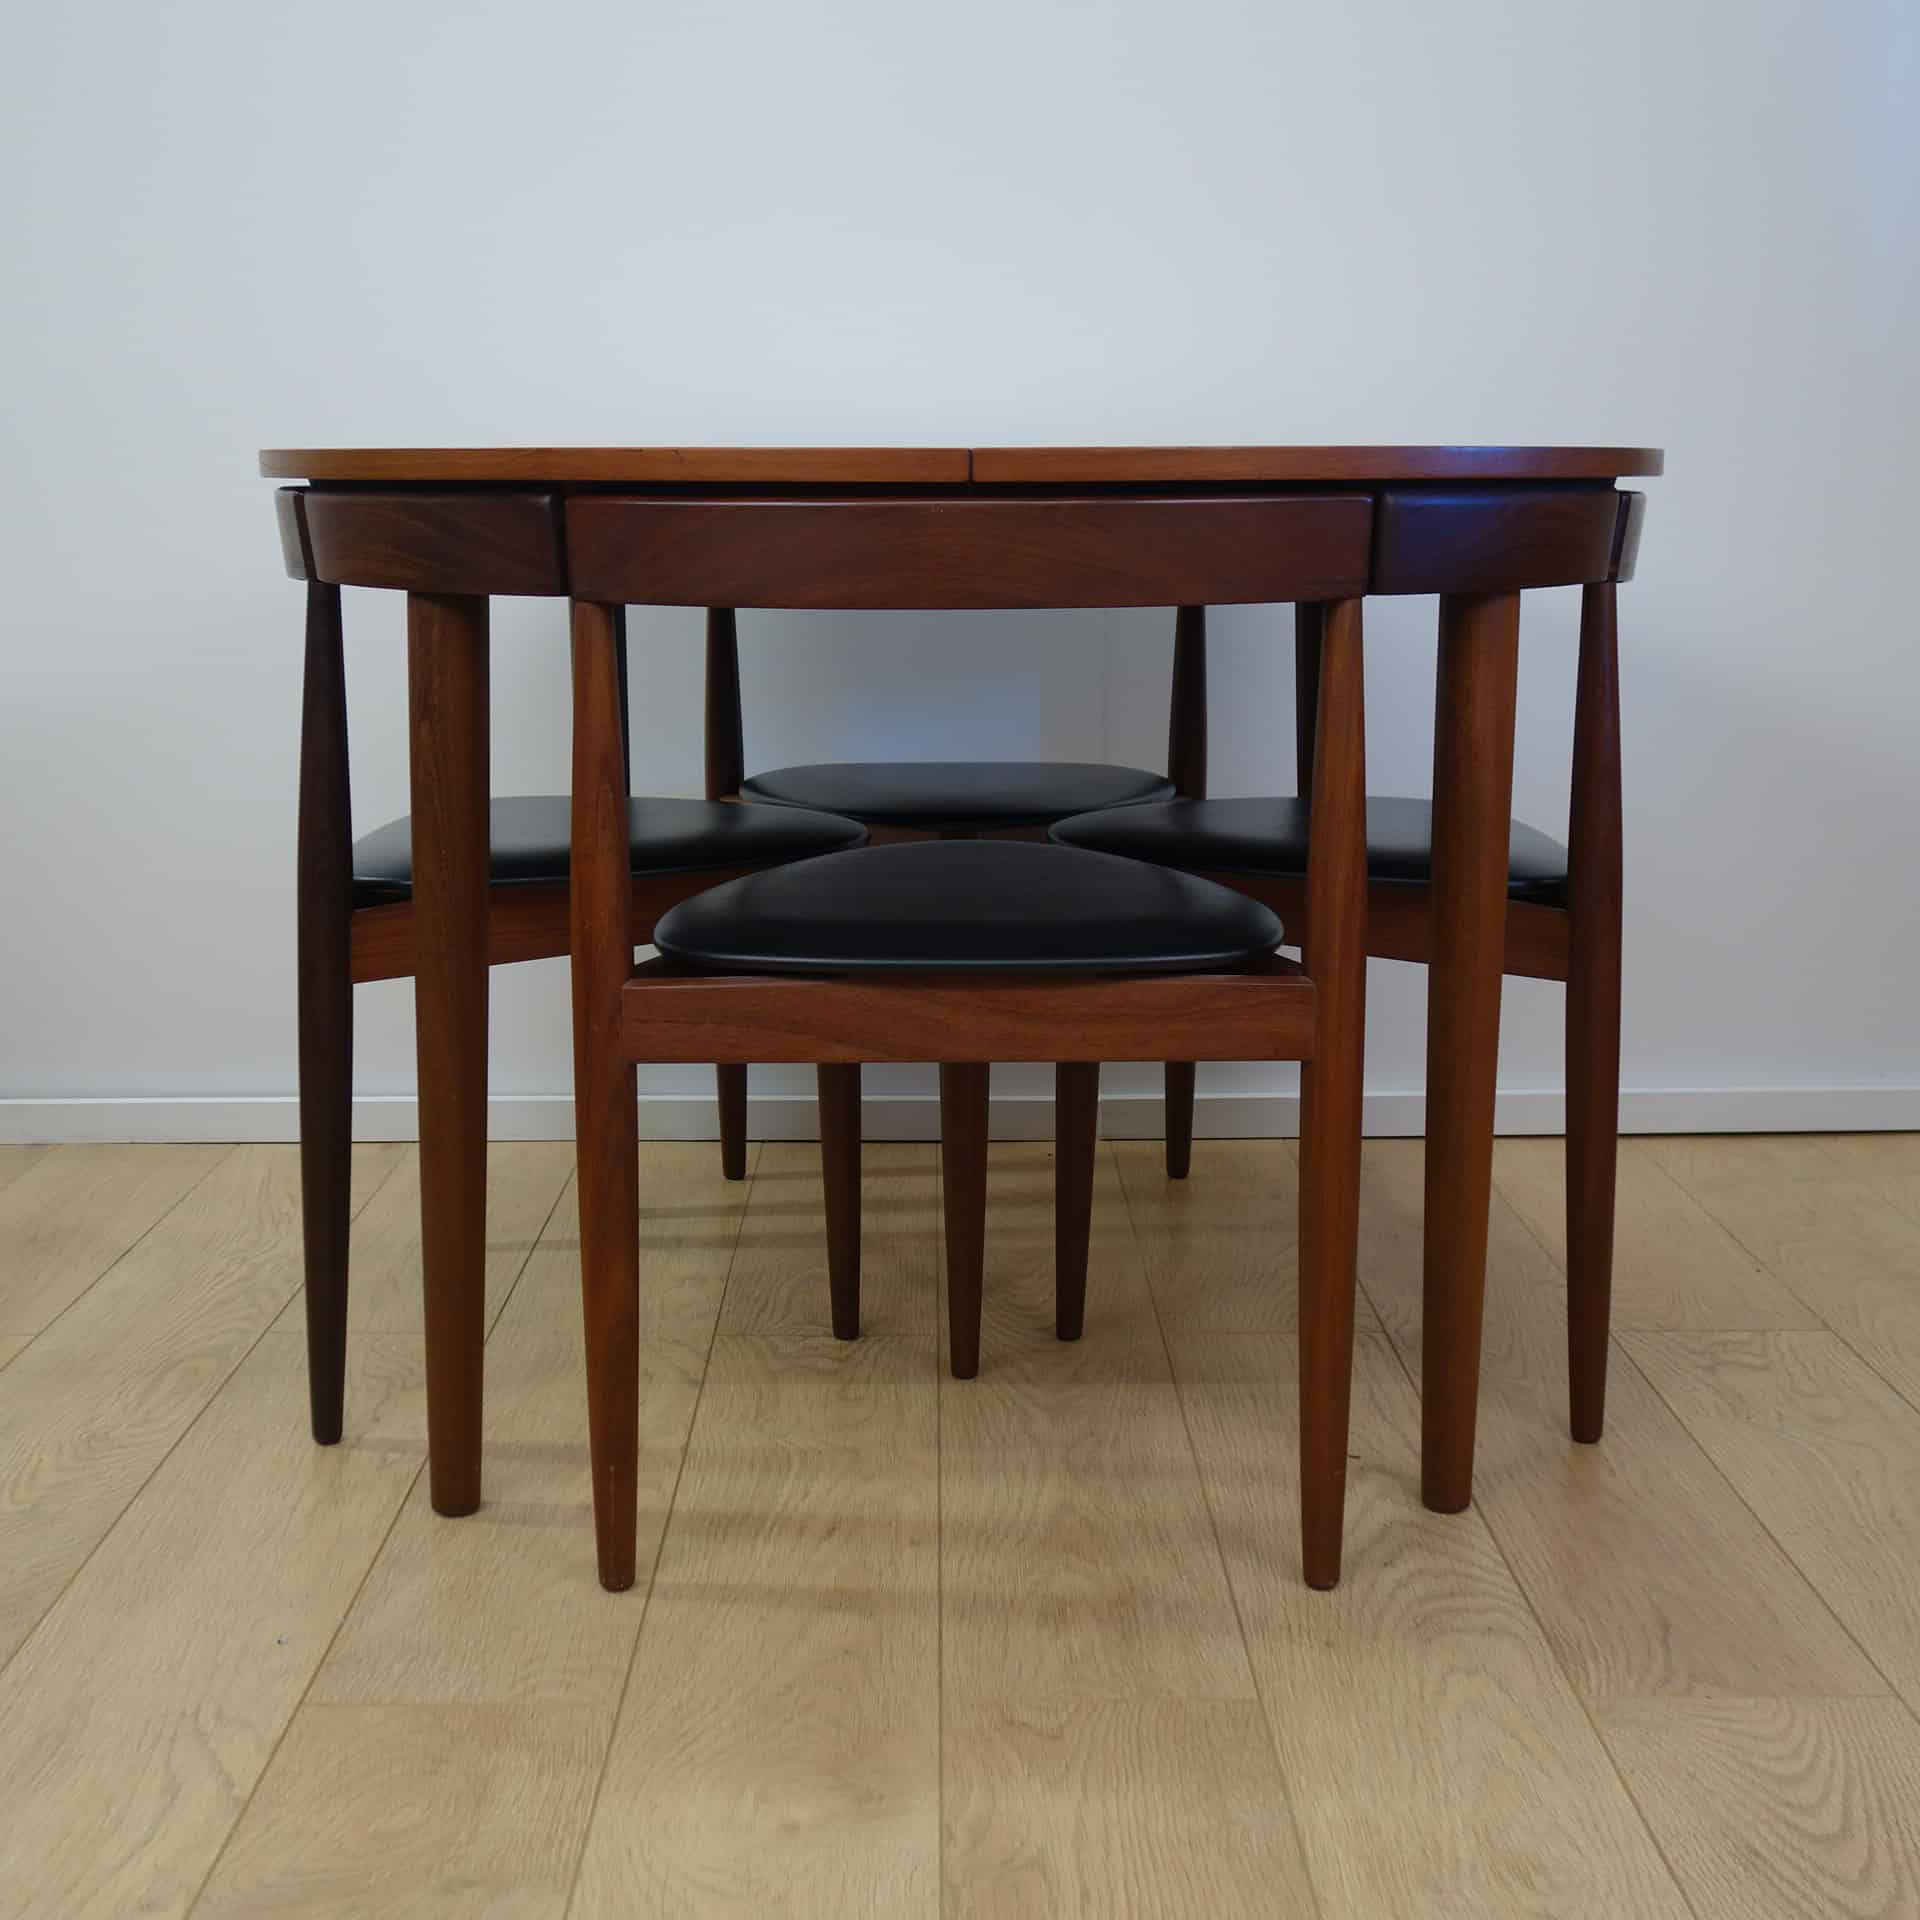 Frem Rojle extending dining table and chairs